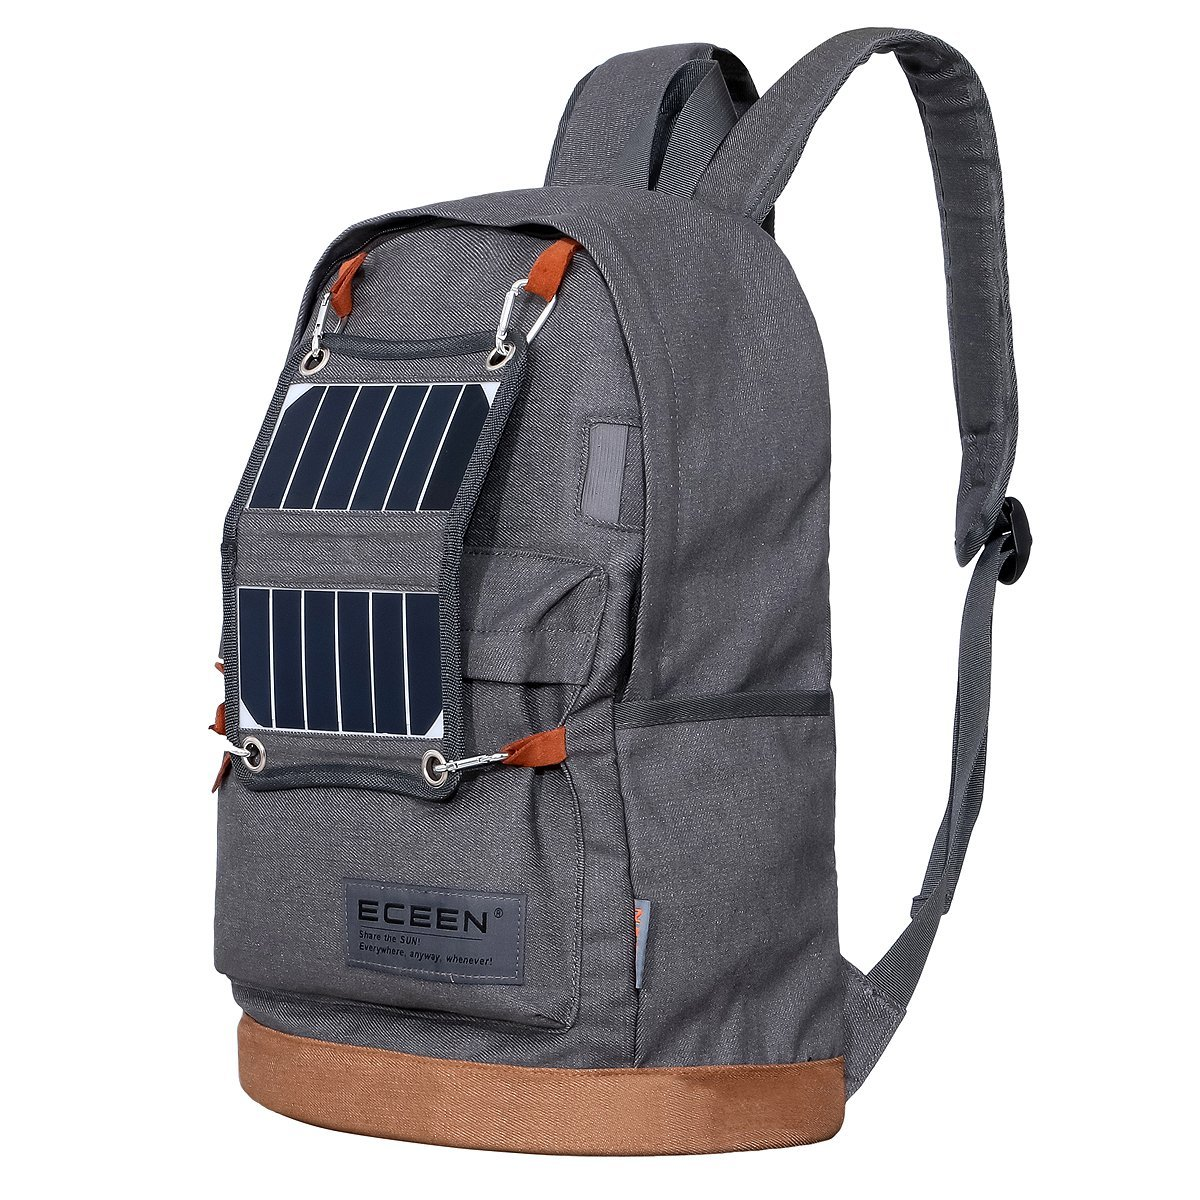 ECEEN Hiking Daypack Smart Backpack